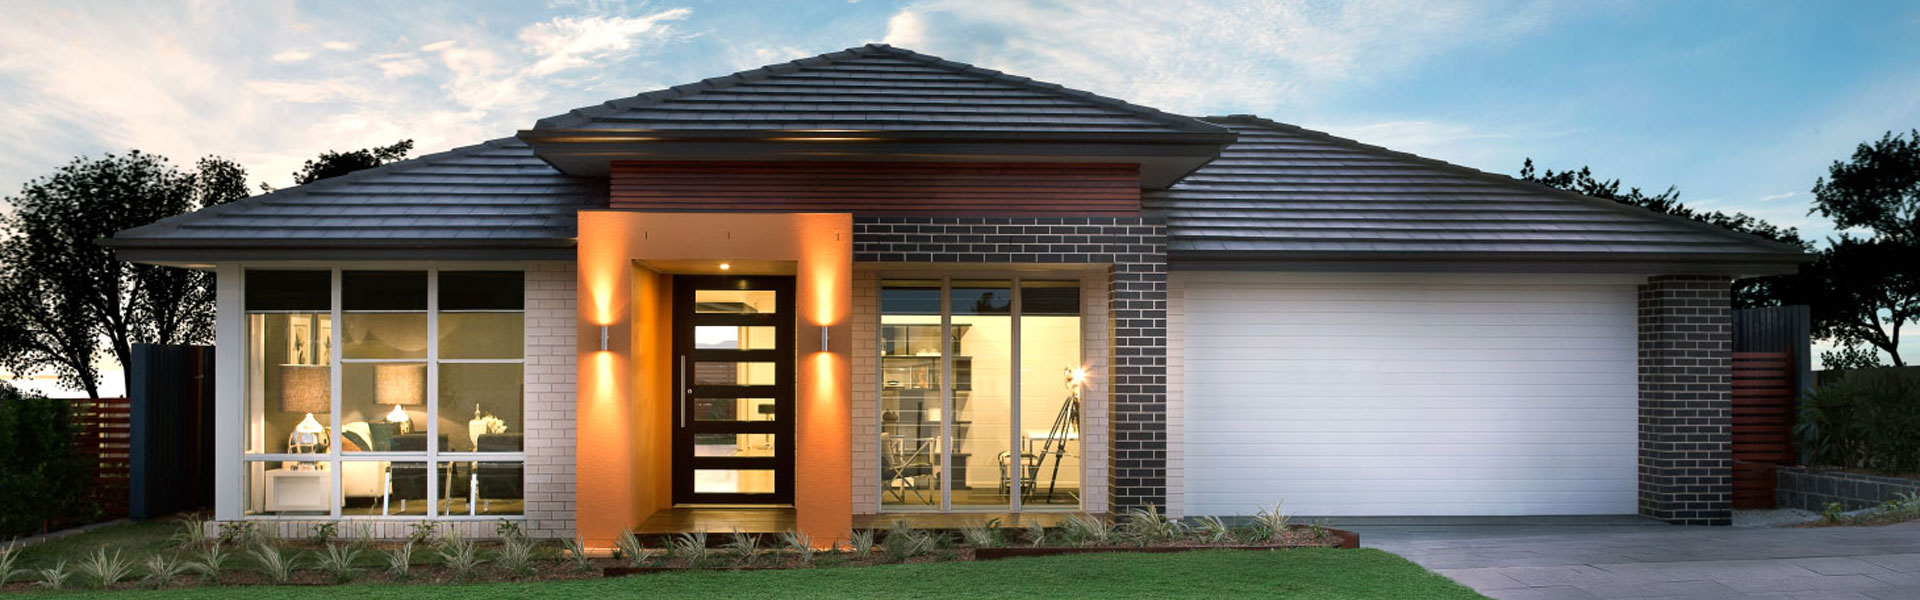 "<h1>Re-Roofing Specialists<br />Melbourne</h1><p>Looking to replace your old tiled roof? We are a leading re-roofing specialist with over 50 years experience providing re-roofing services to all parts of Melbourne.<br /><a href=""contact-us"">Obtain Quote</a></p>"